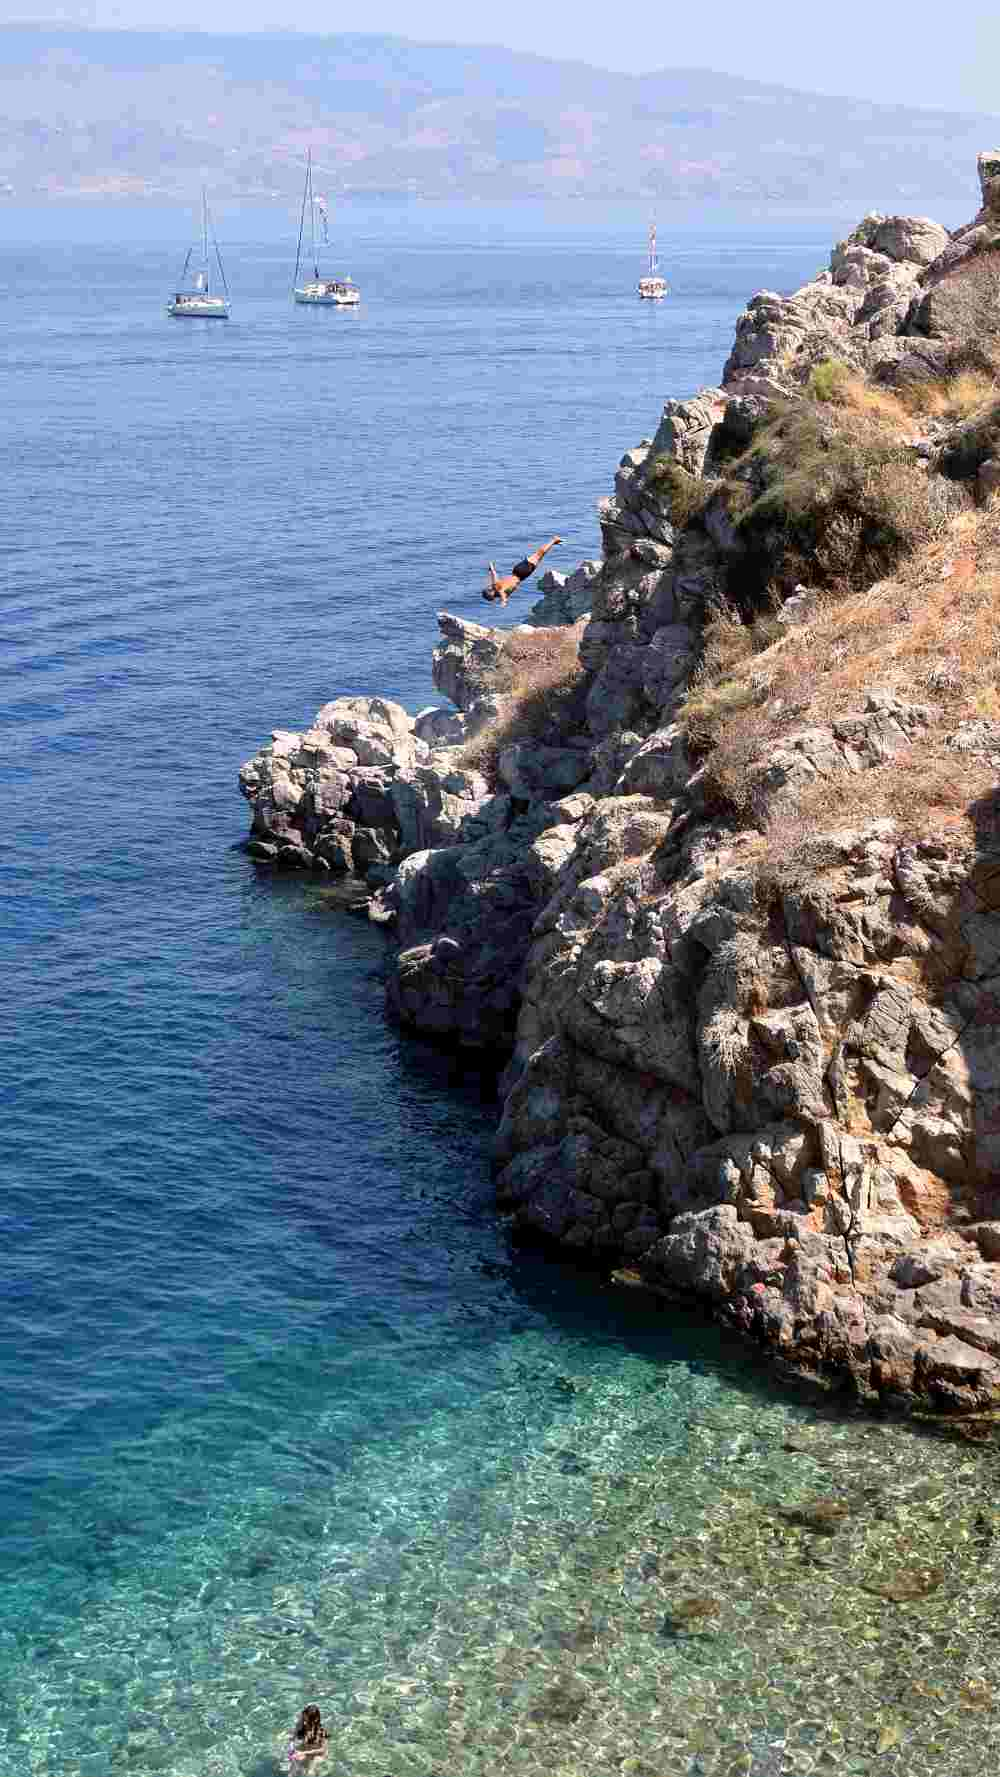 hydra-cliff-diving-aleksander-atmalex-4